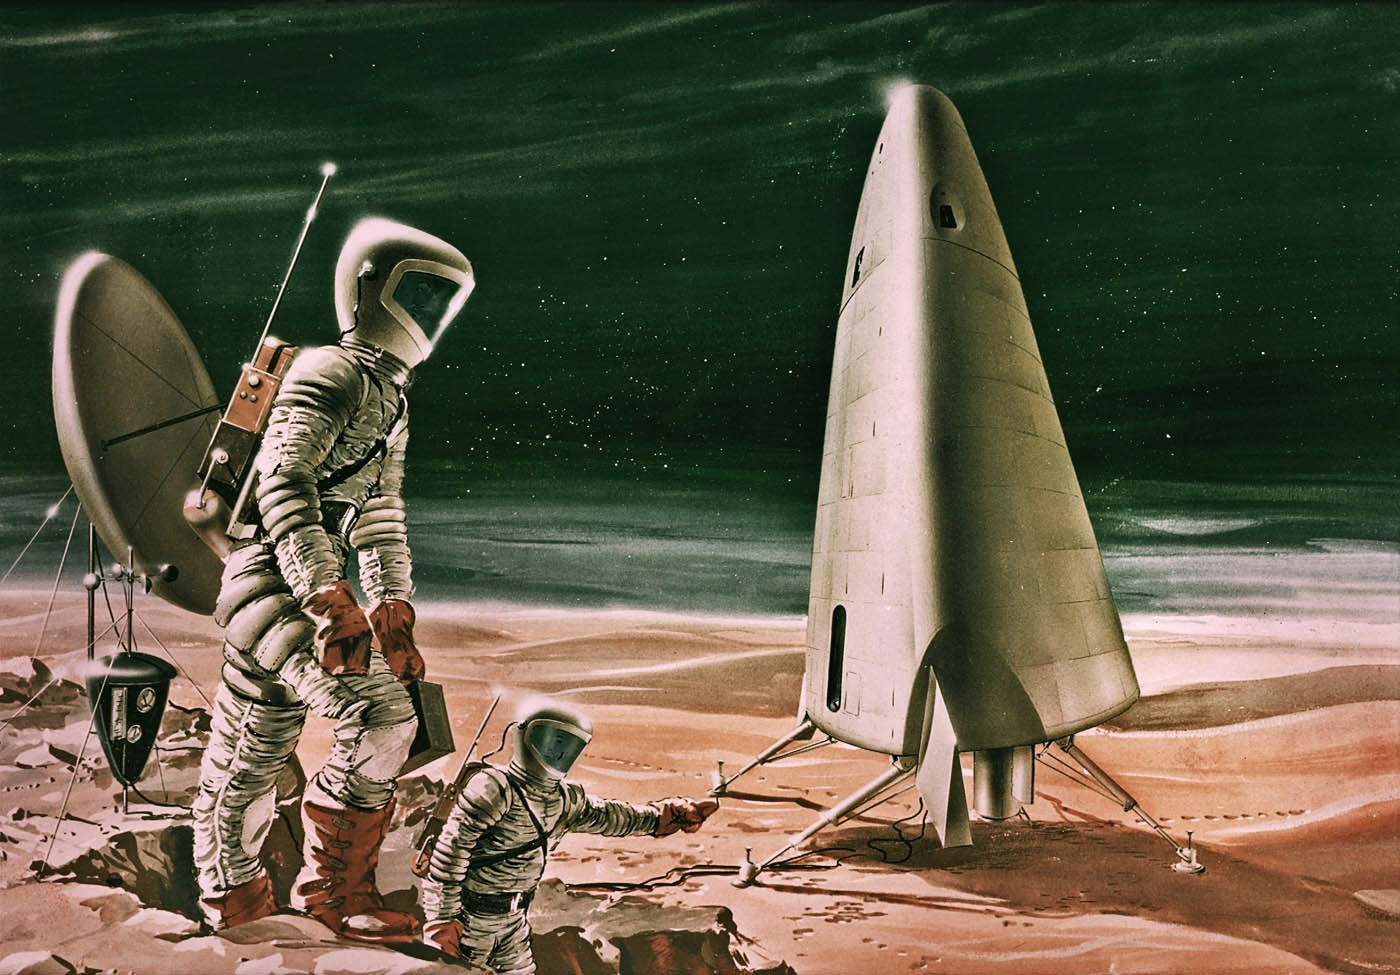 drawing of a hypothetical Mars exploration with human astronauts